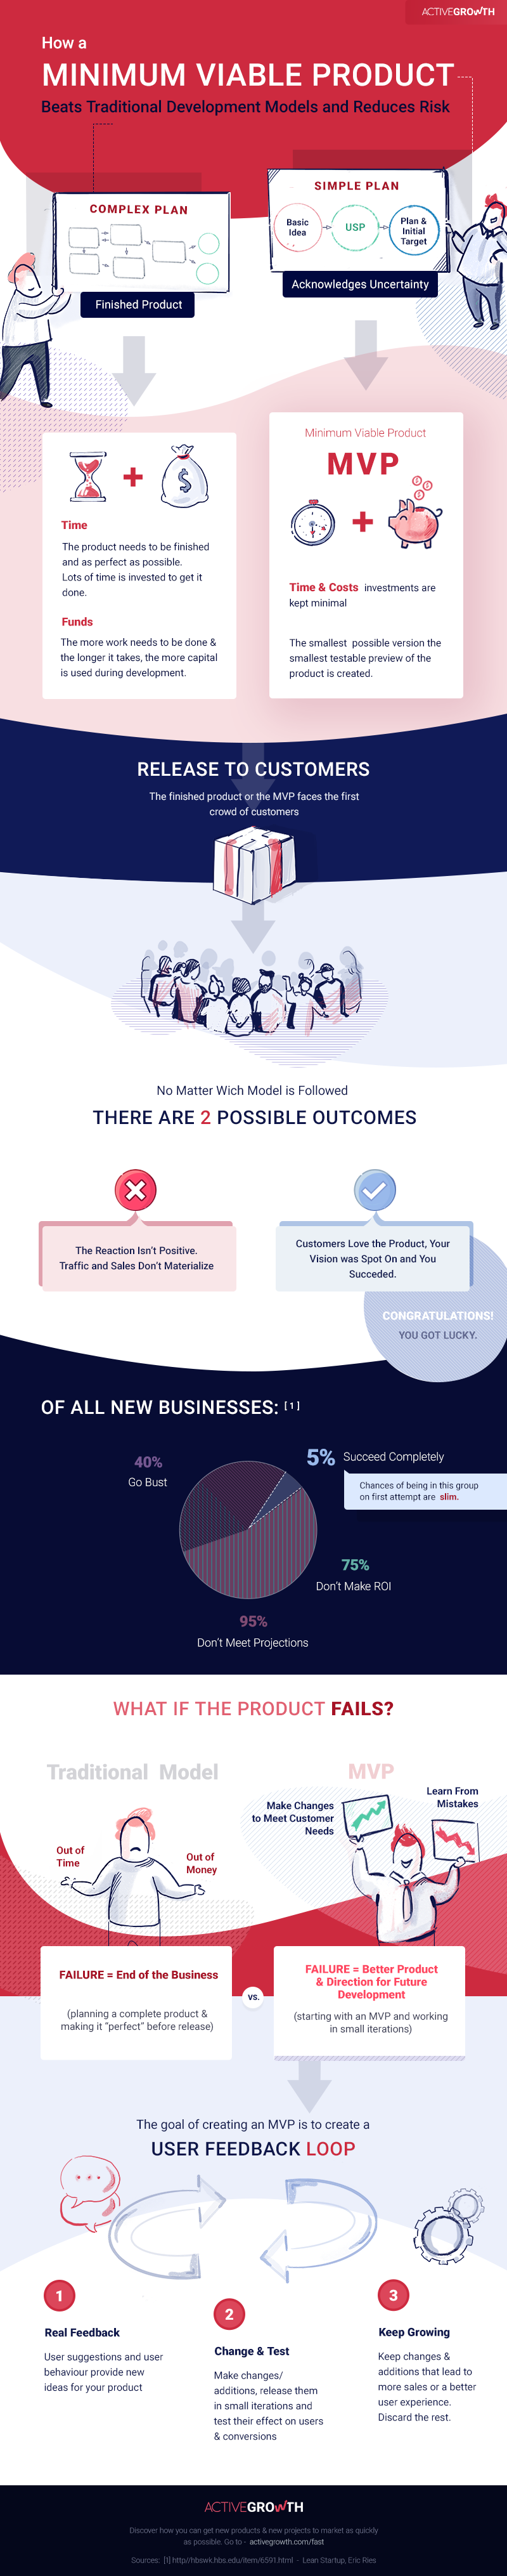 How a Minimum Viable Product Beats Traditional Development Models and Reduces Risk #infographic